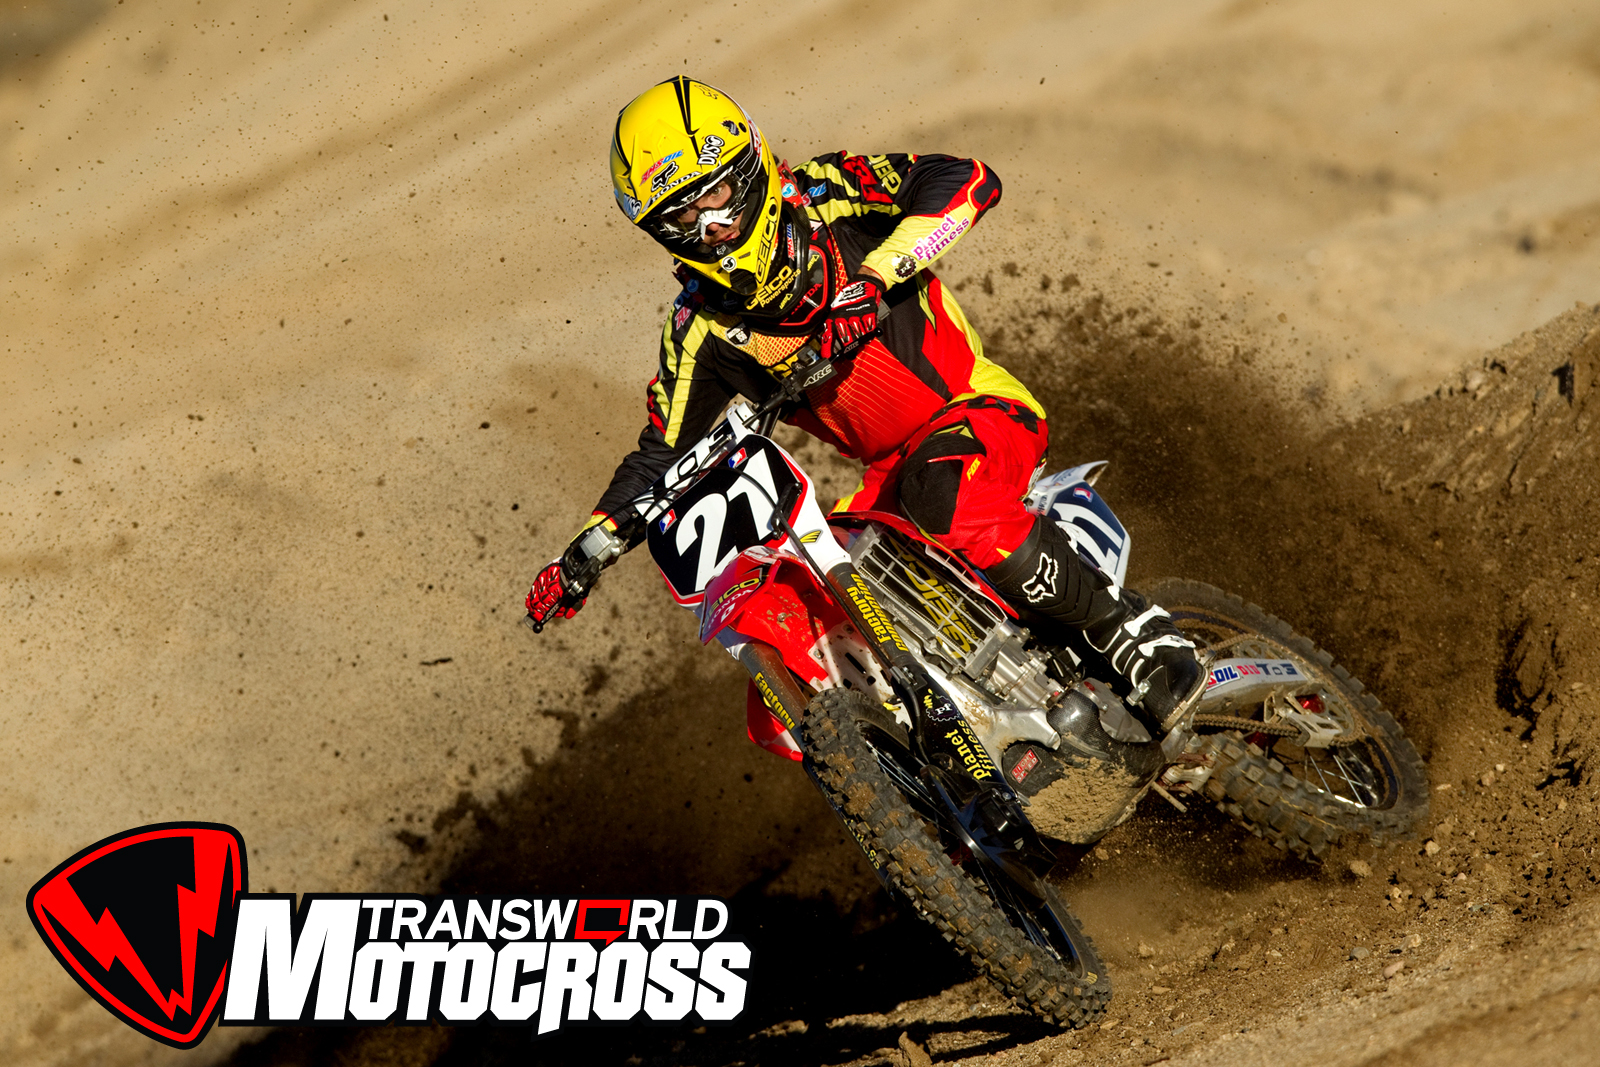 Geico Powersports/Honda Wallpapers